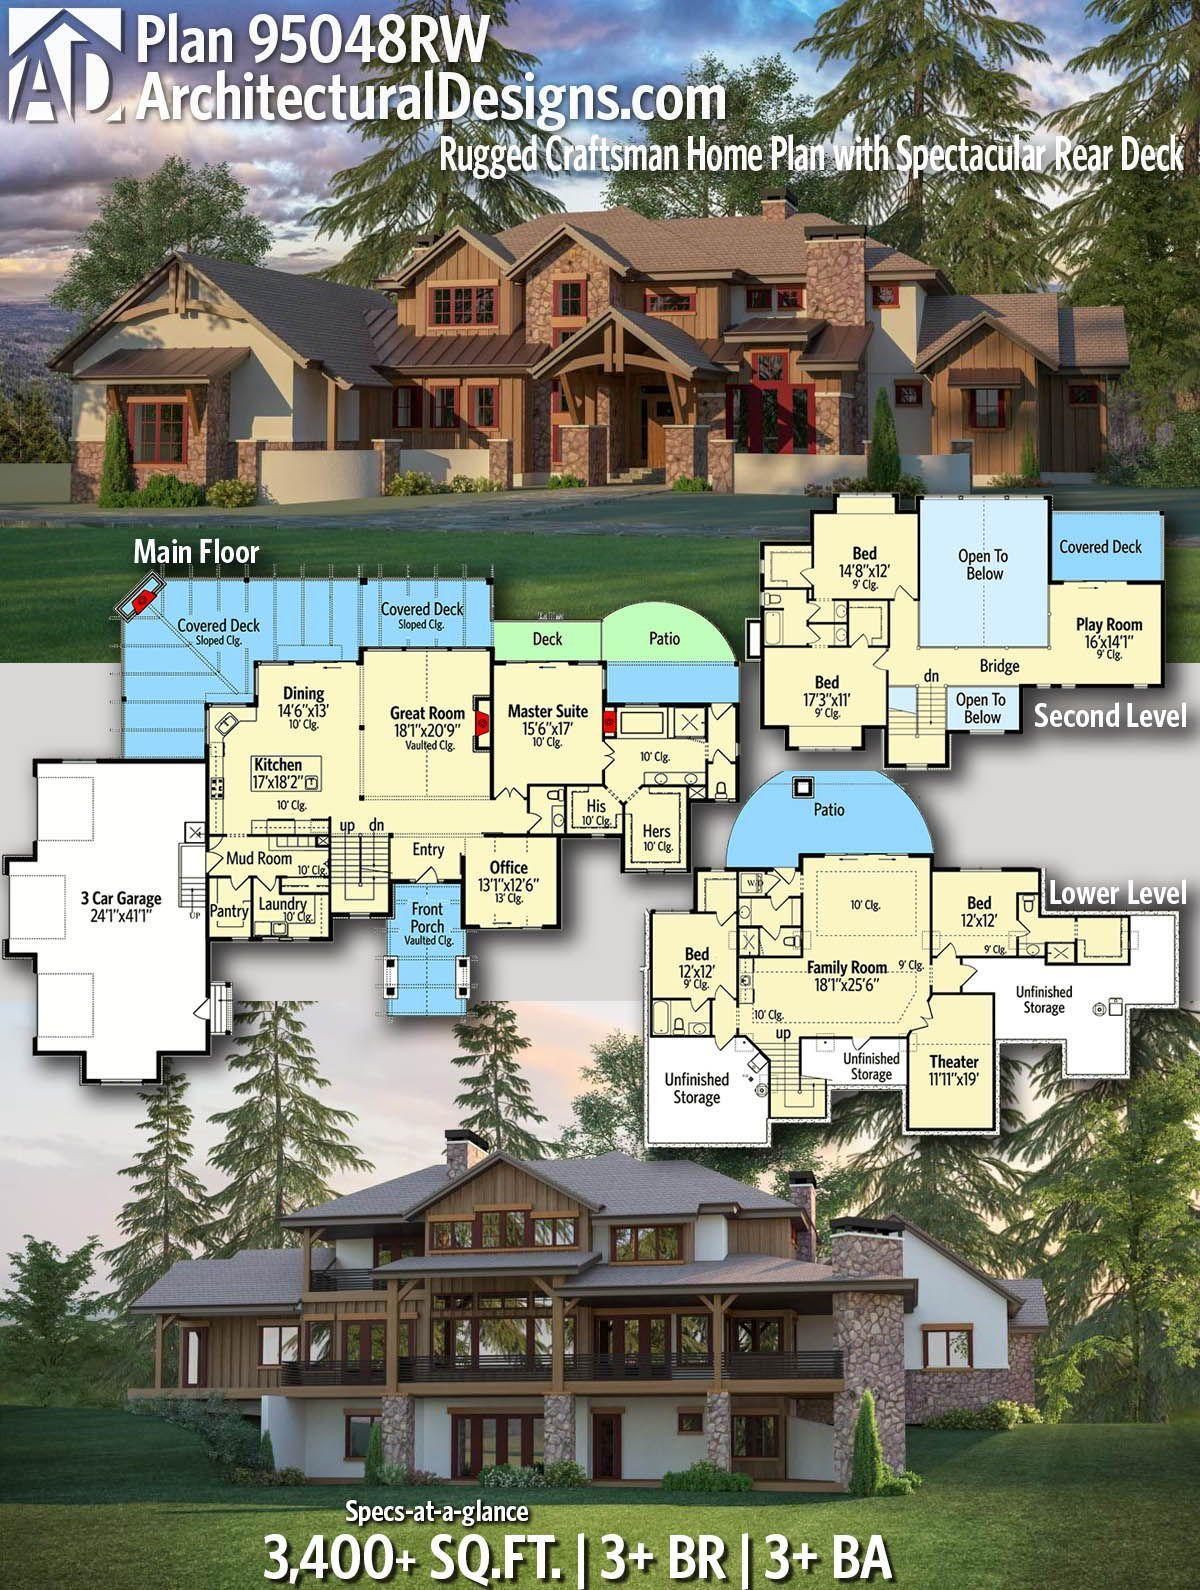 Plan 95048rw Rugged Craftsman Home Plan With Spectacular Rear Deck Craftsman House Plans Dream House Plans Rustic House Plans